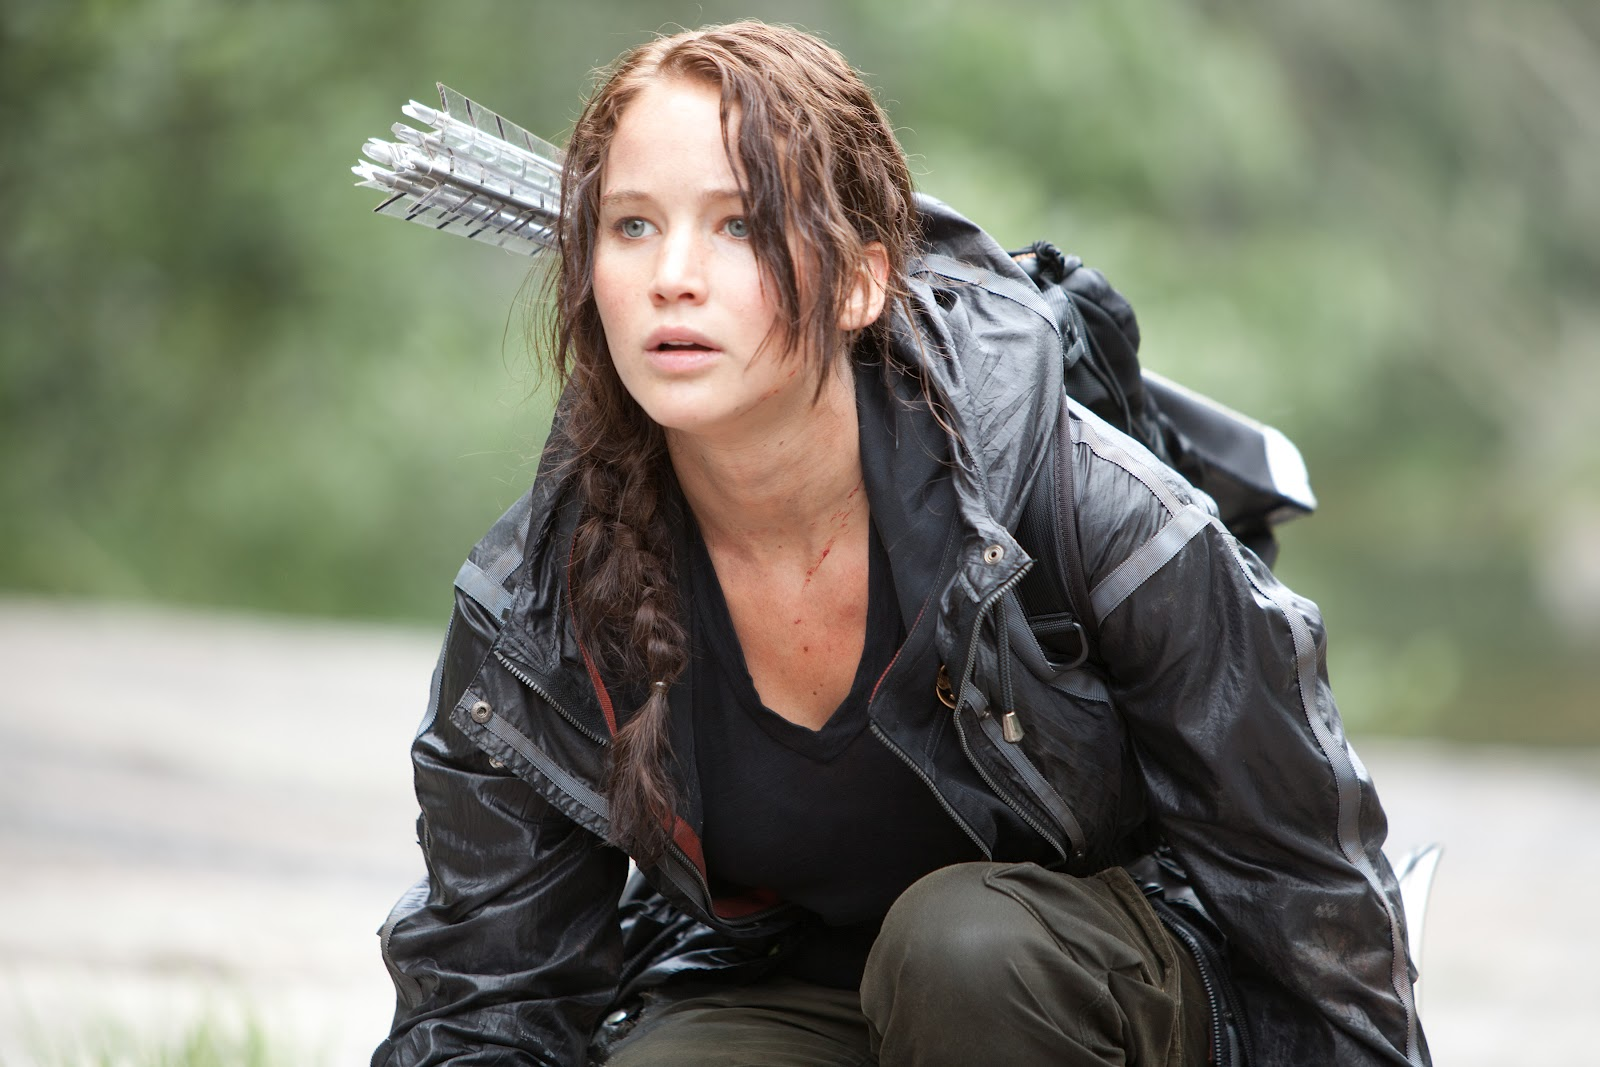 Jennifer Lawrence as Katniss Everdeen in The Hunger Games (2012)